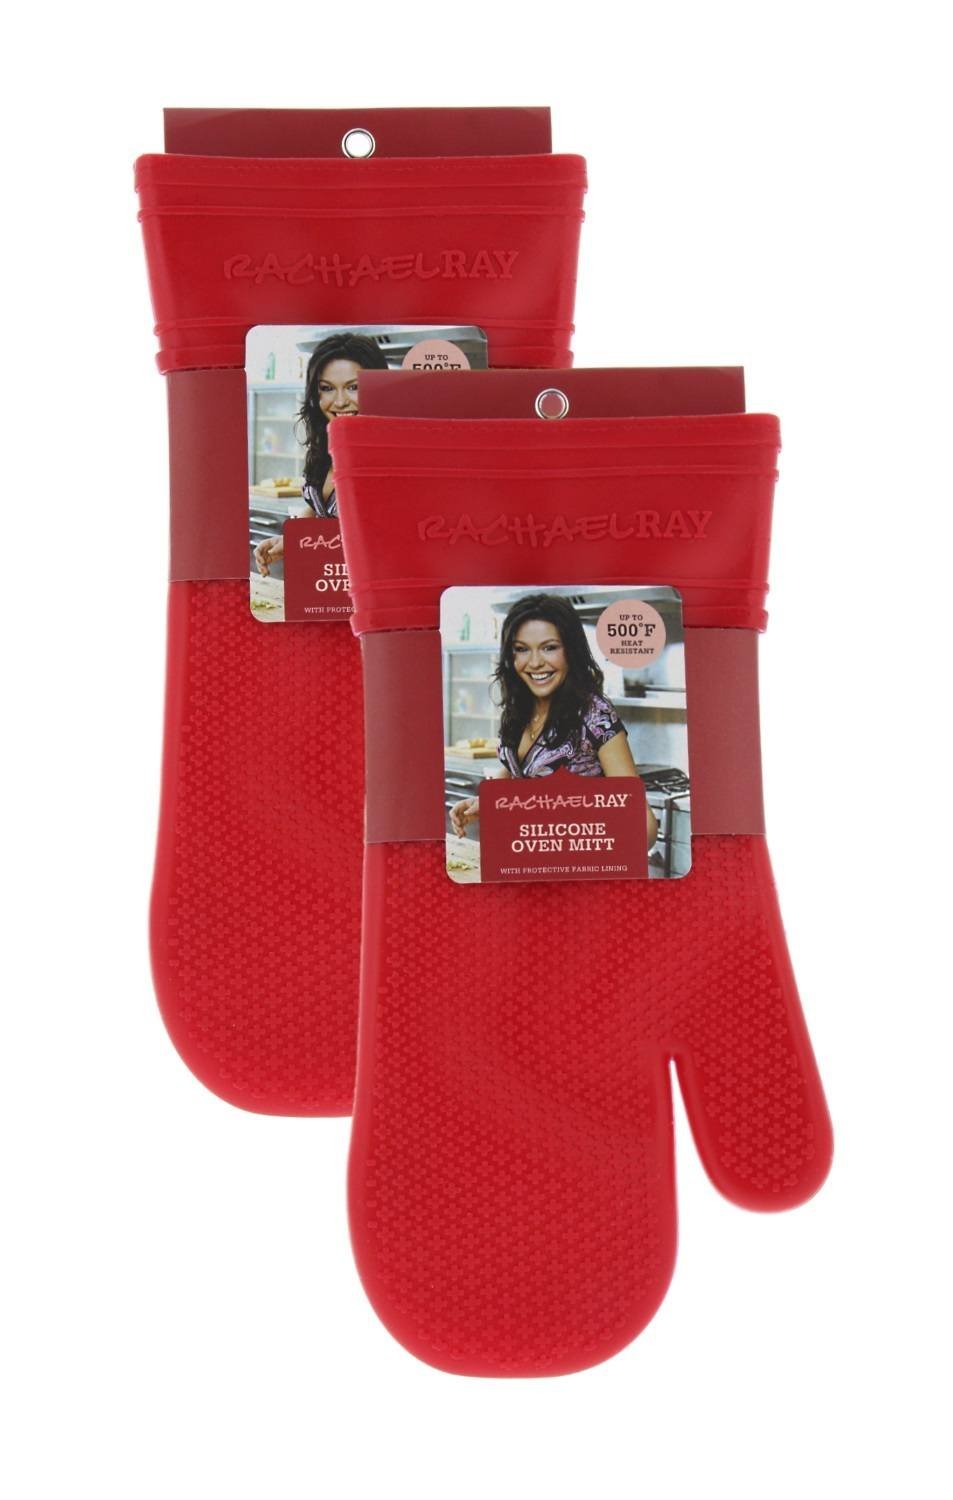 Rachael Ray Silicone Kitchen Oven Mitt with Quilted Cotton Liner, Cherry Red 2pk by Rachael Ray